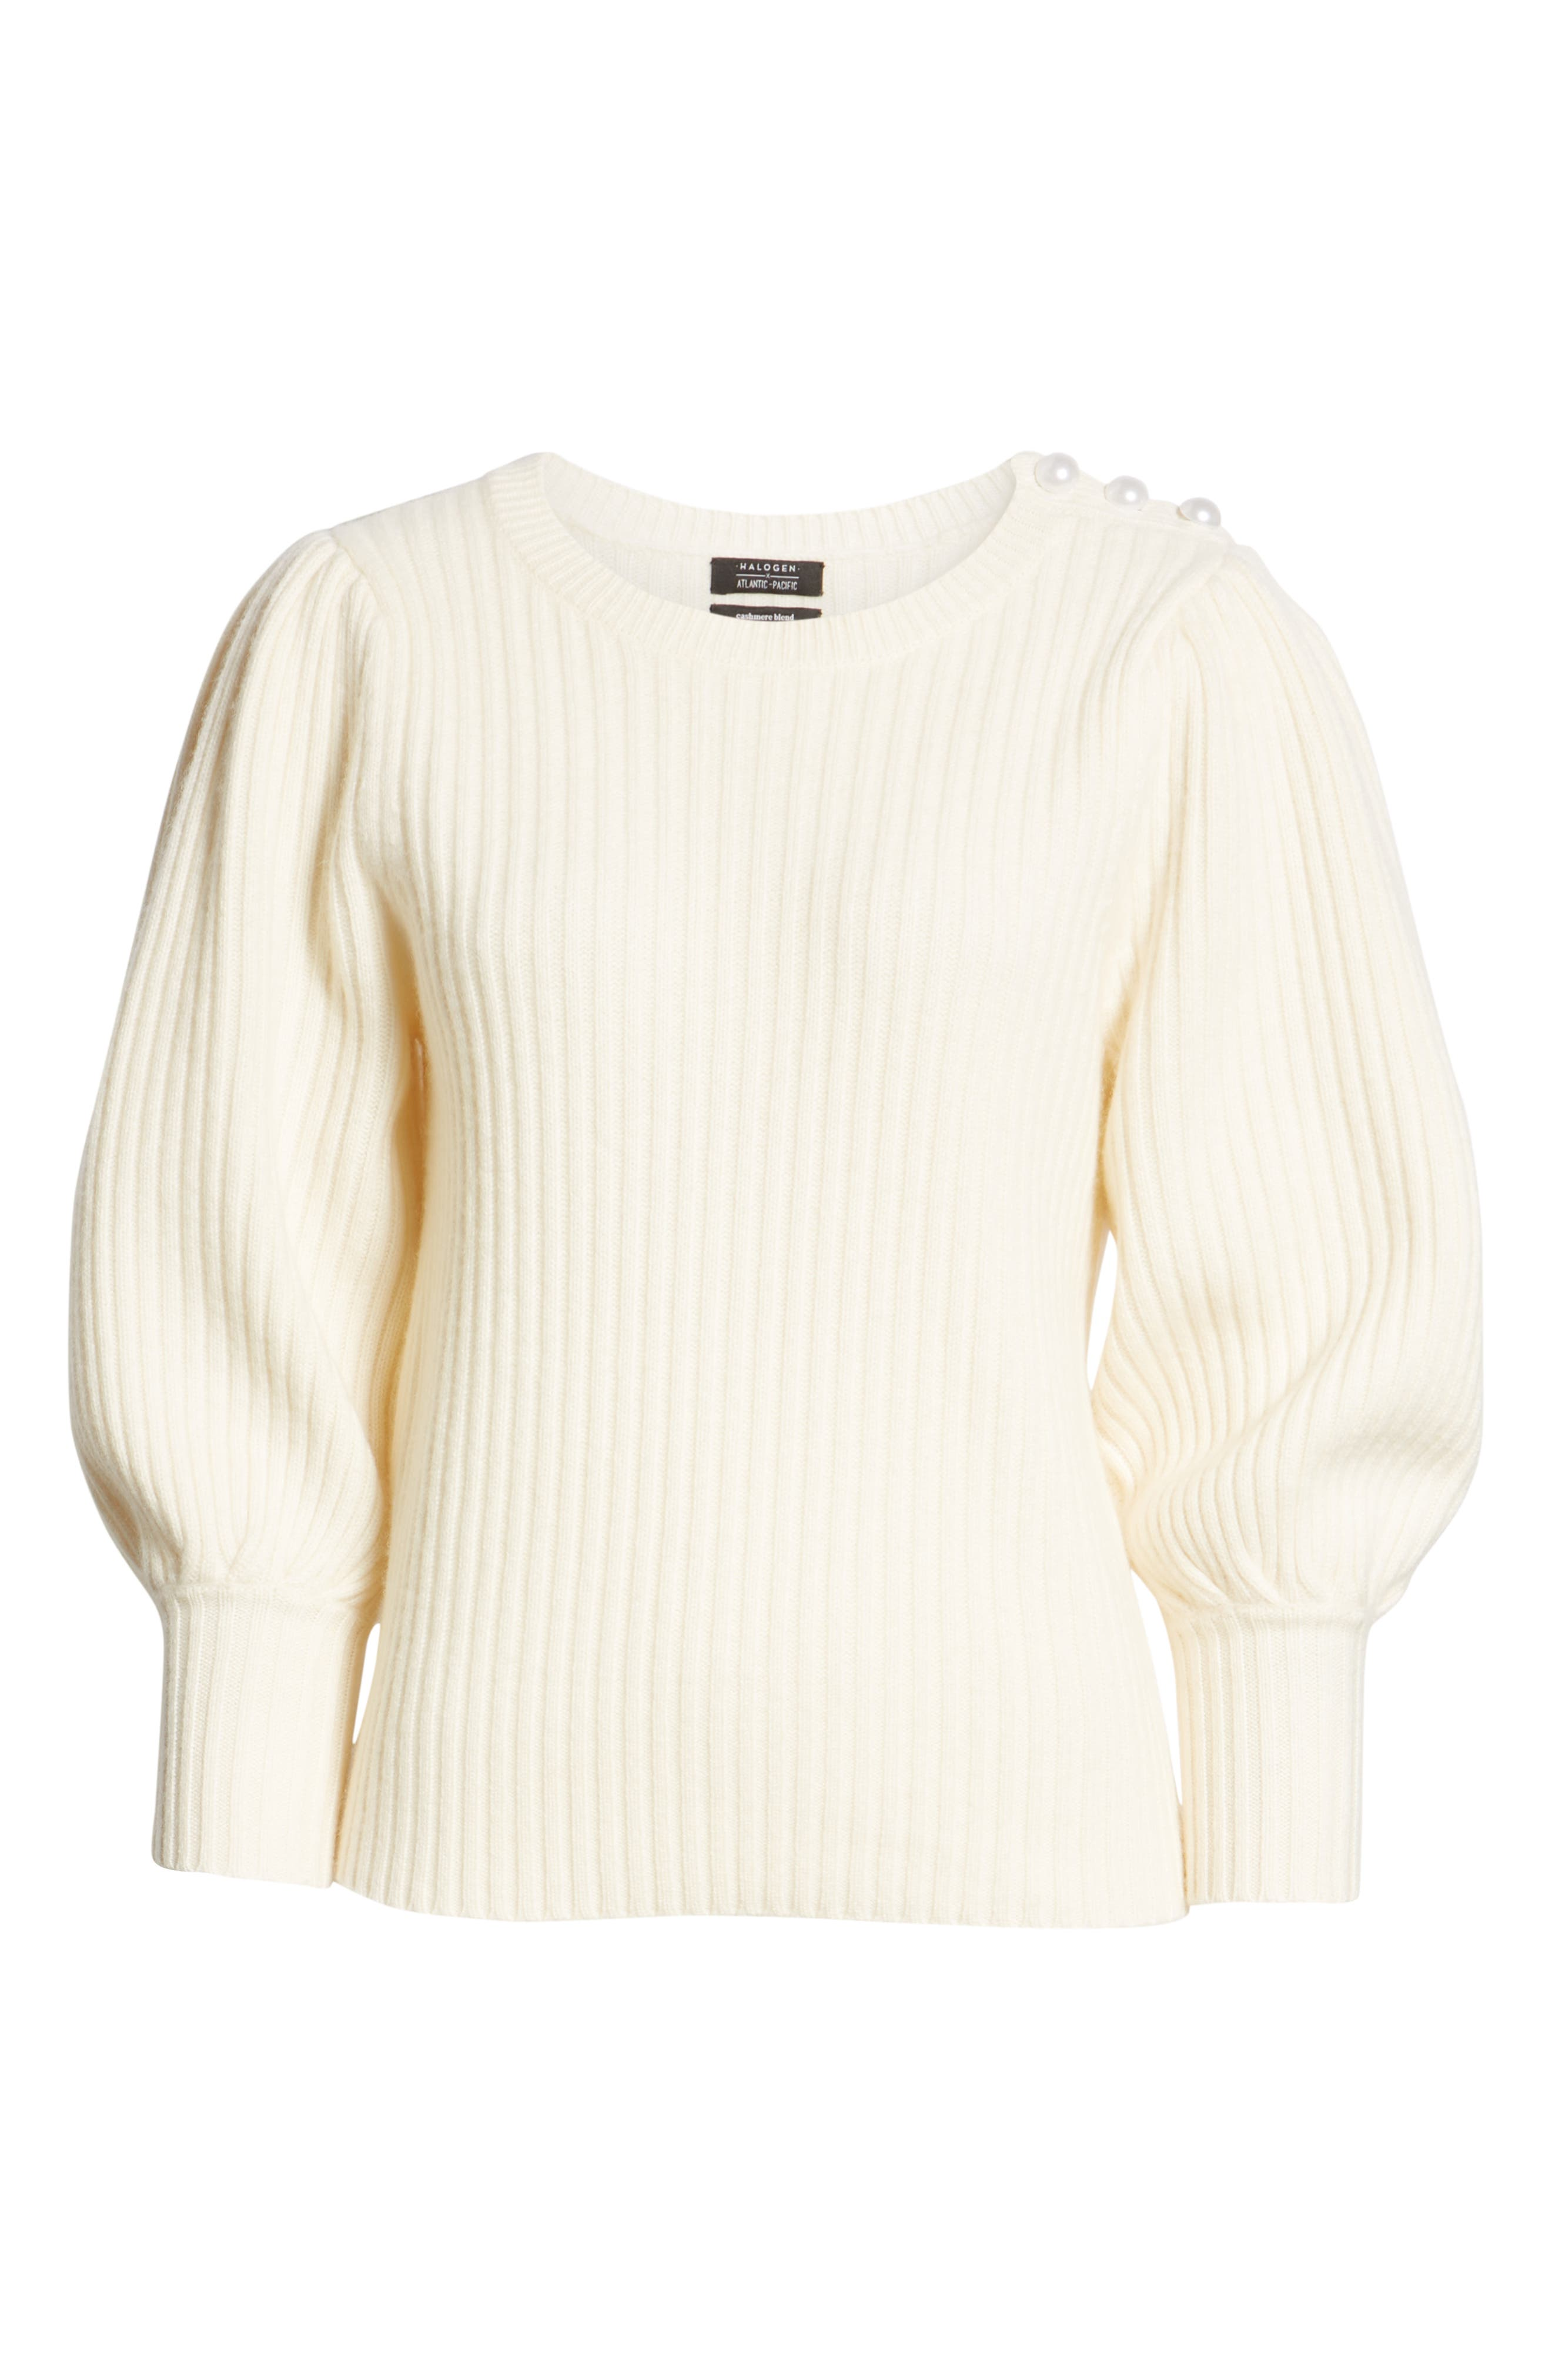 x Atlantic-Pacific Balloon Sleeve Wool & Cashmere Sweater,                             Alternate thumbnail 7, color,                             900